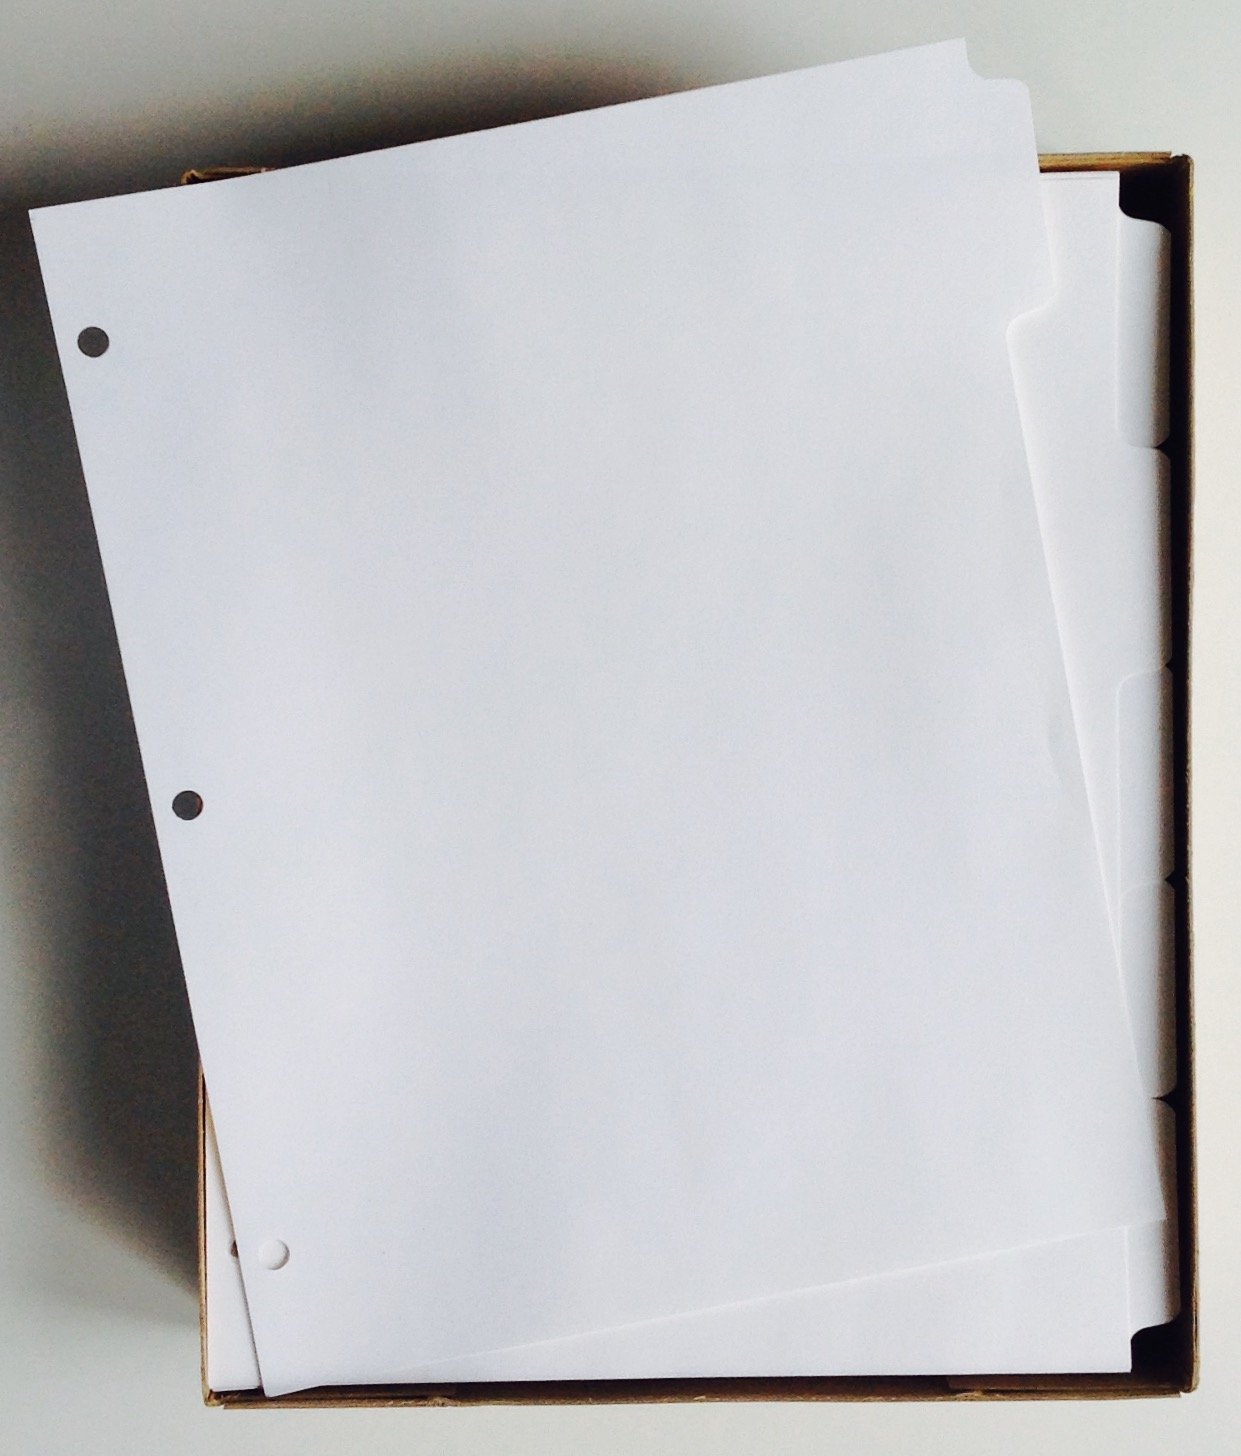 KLEER-FAX (88914) 5-Tab White Ring-Book Index Divider Sheets, 8.5'' x 11'' - Box of 50 Sets by Kleer Fax